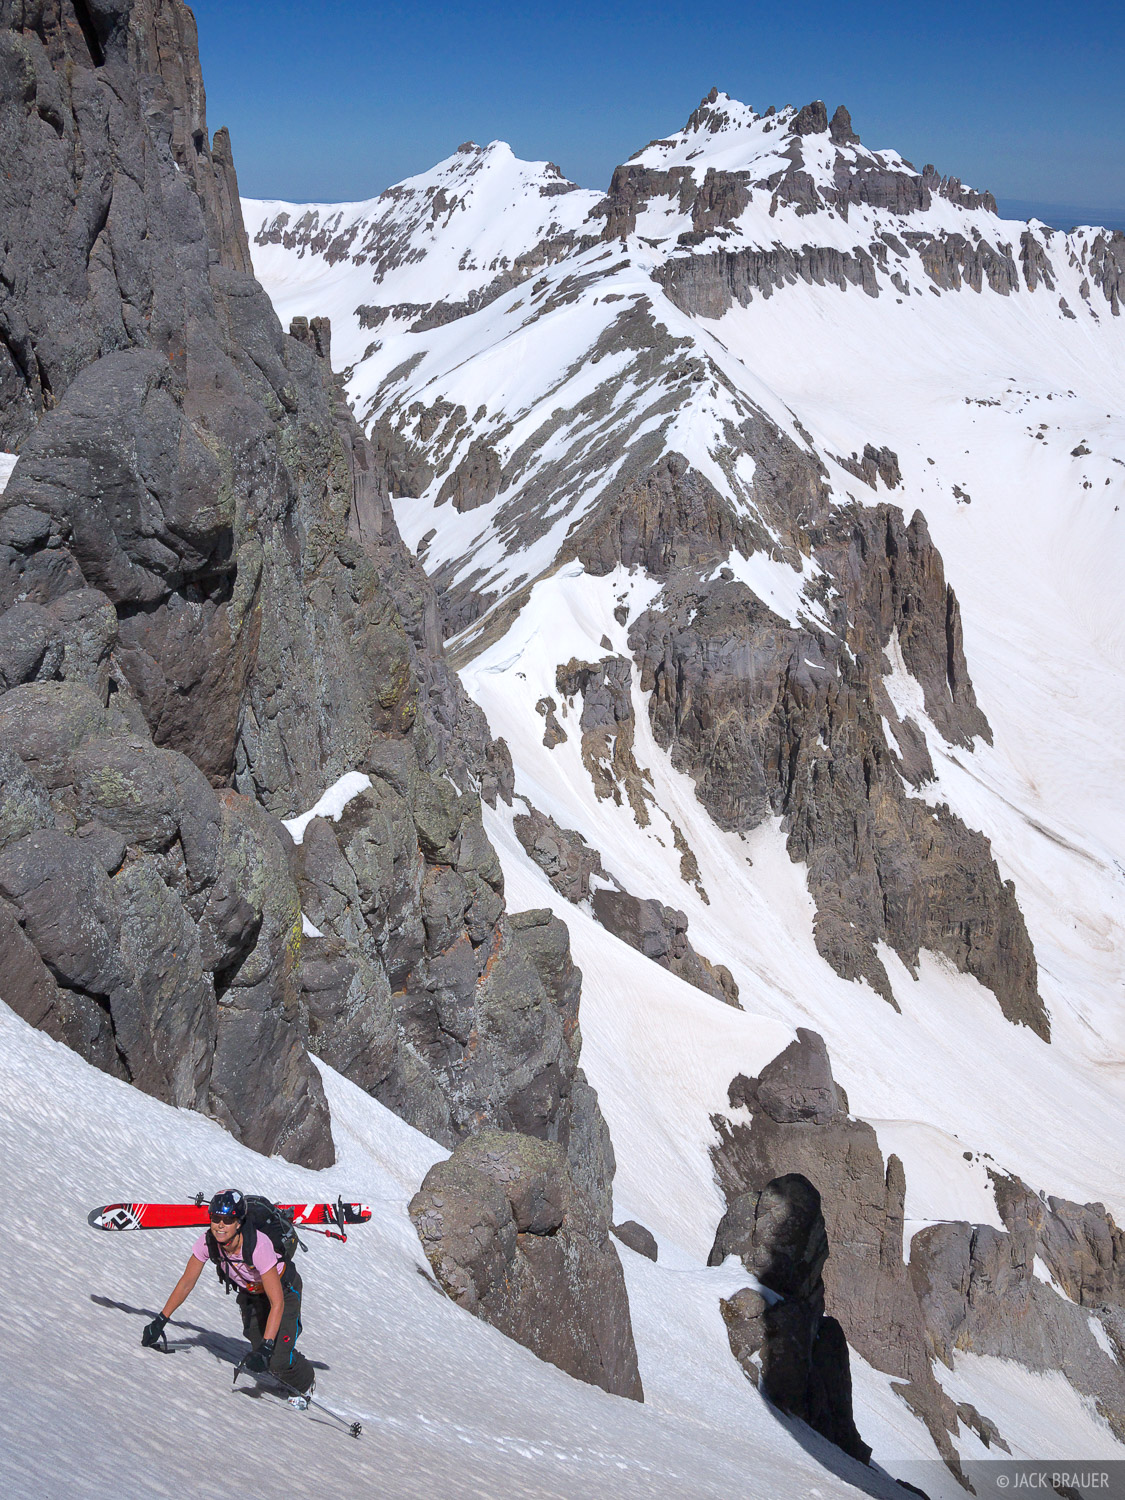 Potosi Peak, couloir, Teakettle, San Juan Mountains, Colorado, June, photo